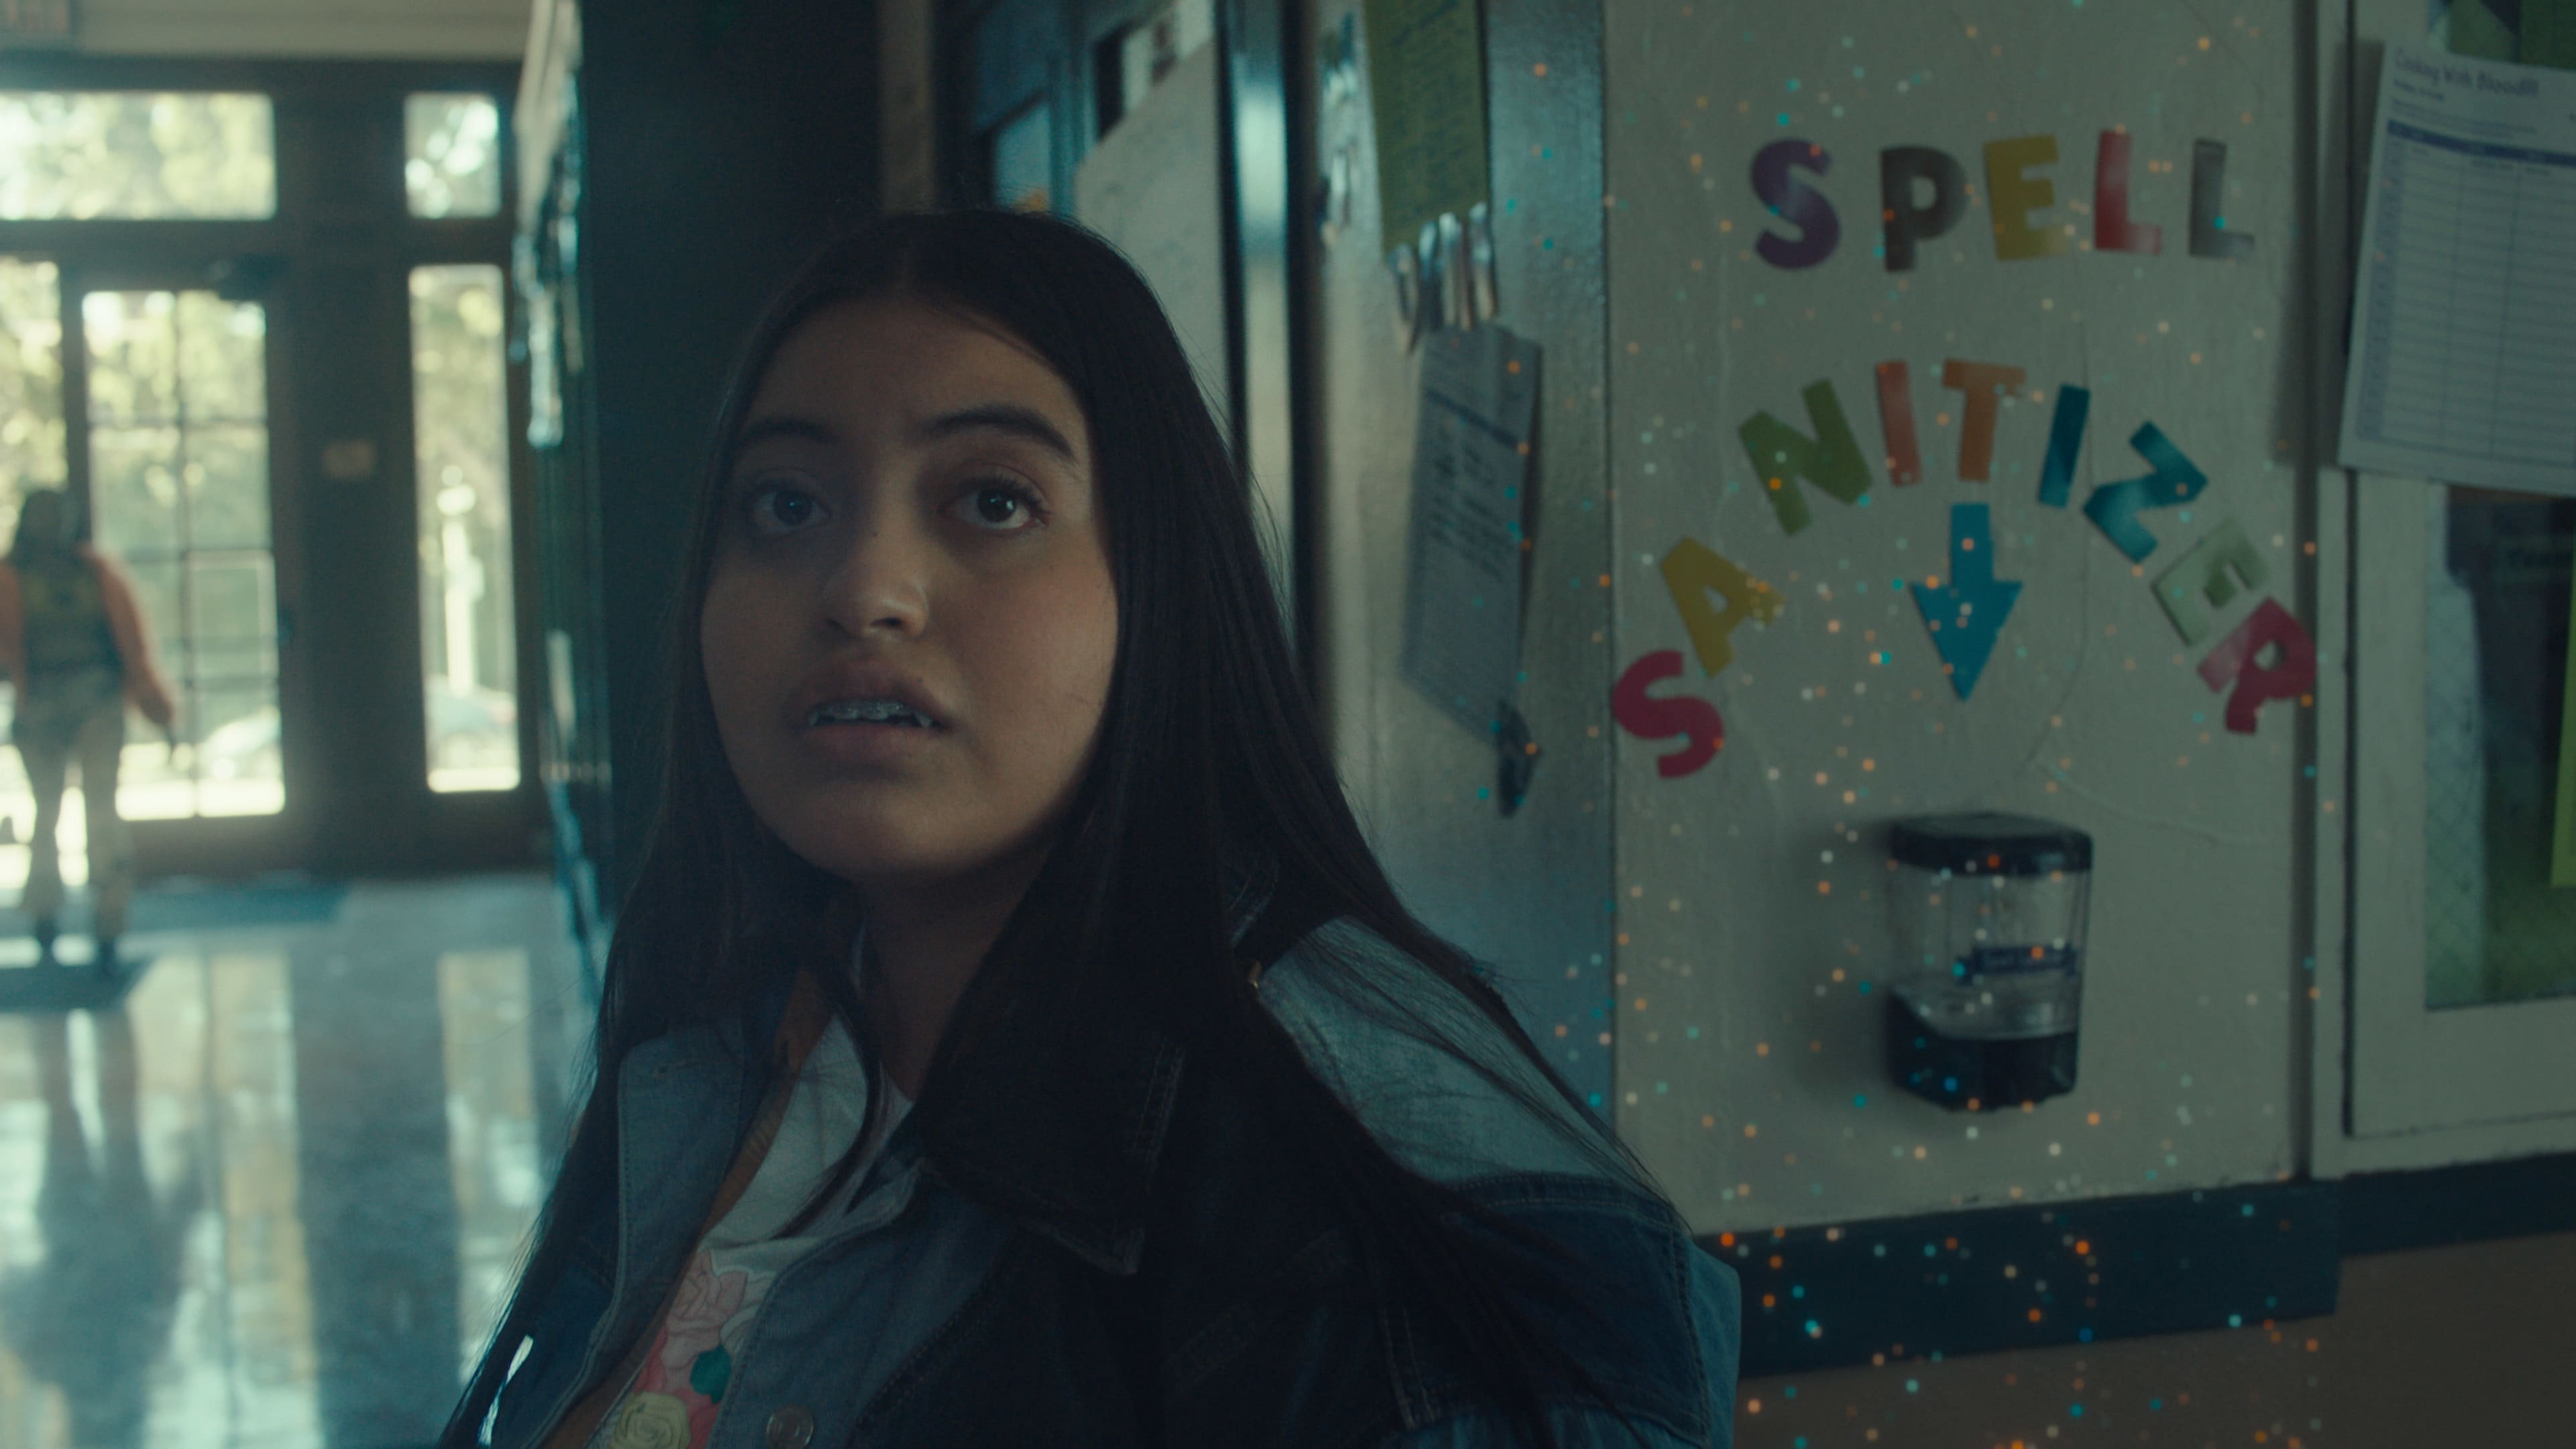 """Keyla Monterroso Mejia as Val Garcia in Disney's """"LAUNCHPAD"""" Season One short, """"GROWING FANGS,"""" Written and Directedby Ann Marie Pace. Photo courtesy of Disney. © 2021 Disney Enterprises, Inc. All Rights Reserved."""